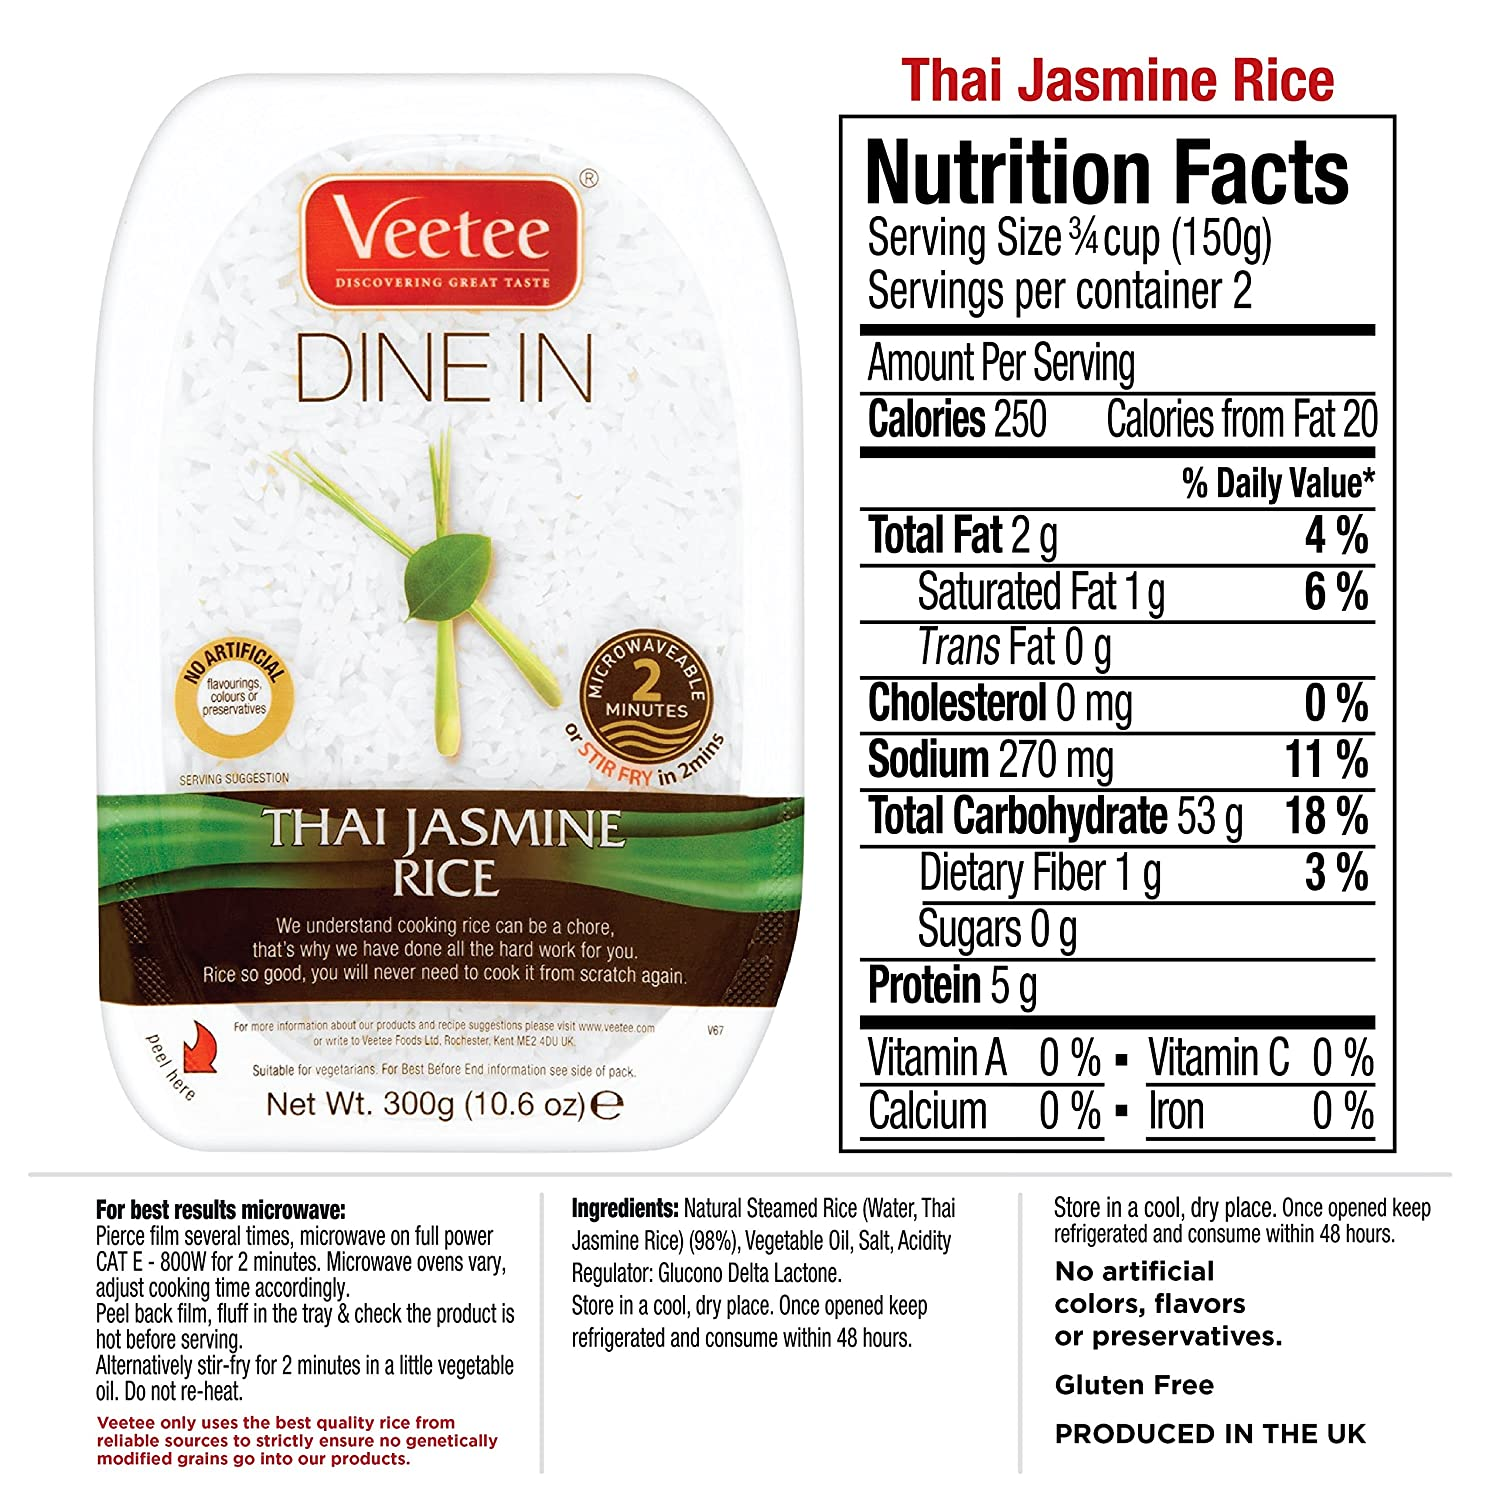 Amazon : Veetee Dine In Rice Jasmine Microwavable Rice, Ready In 2 Minutes  106 Oz